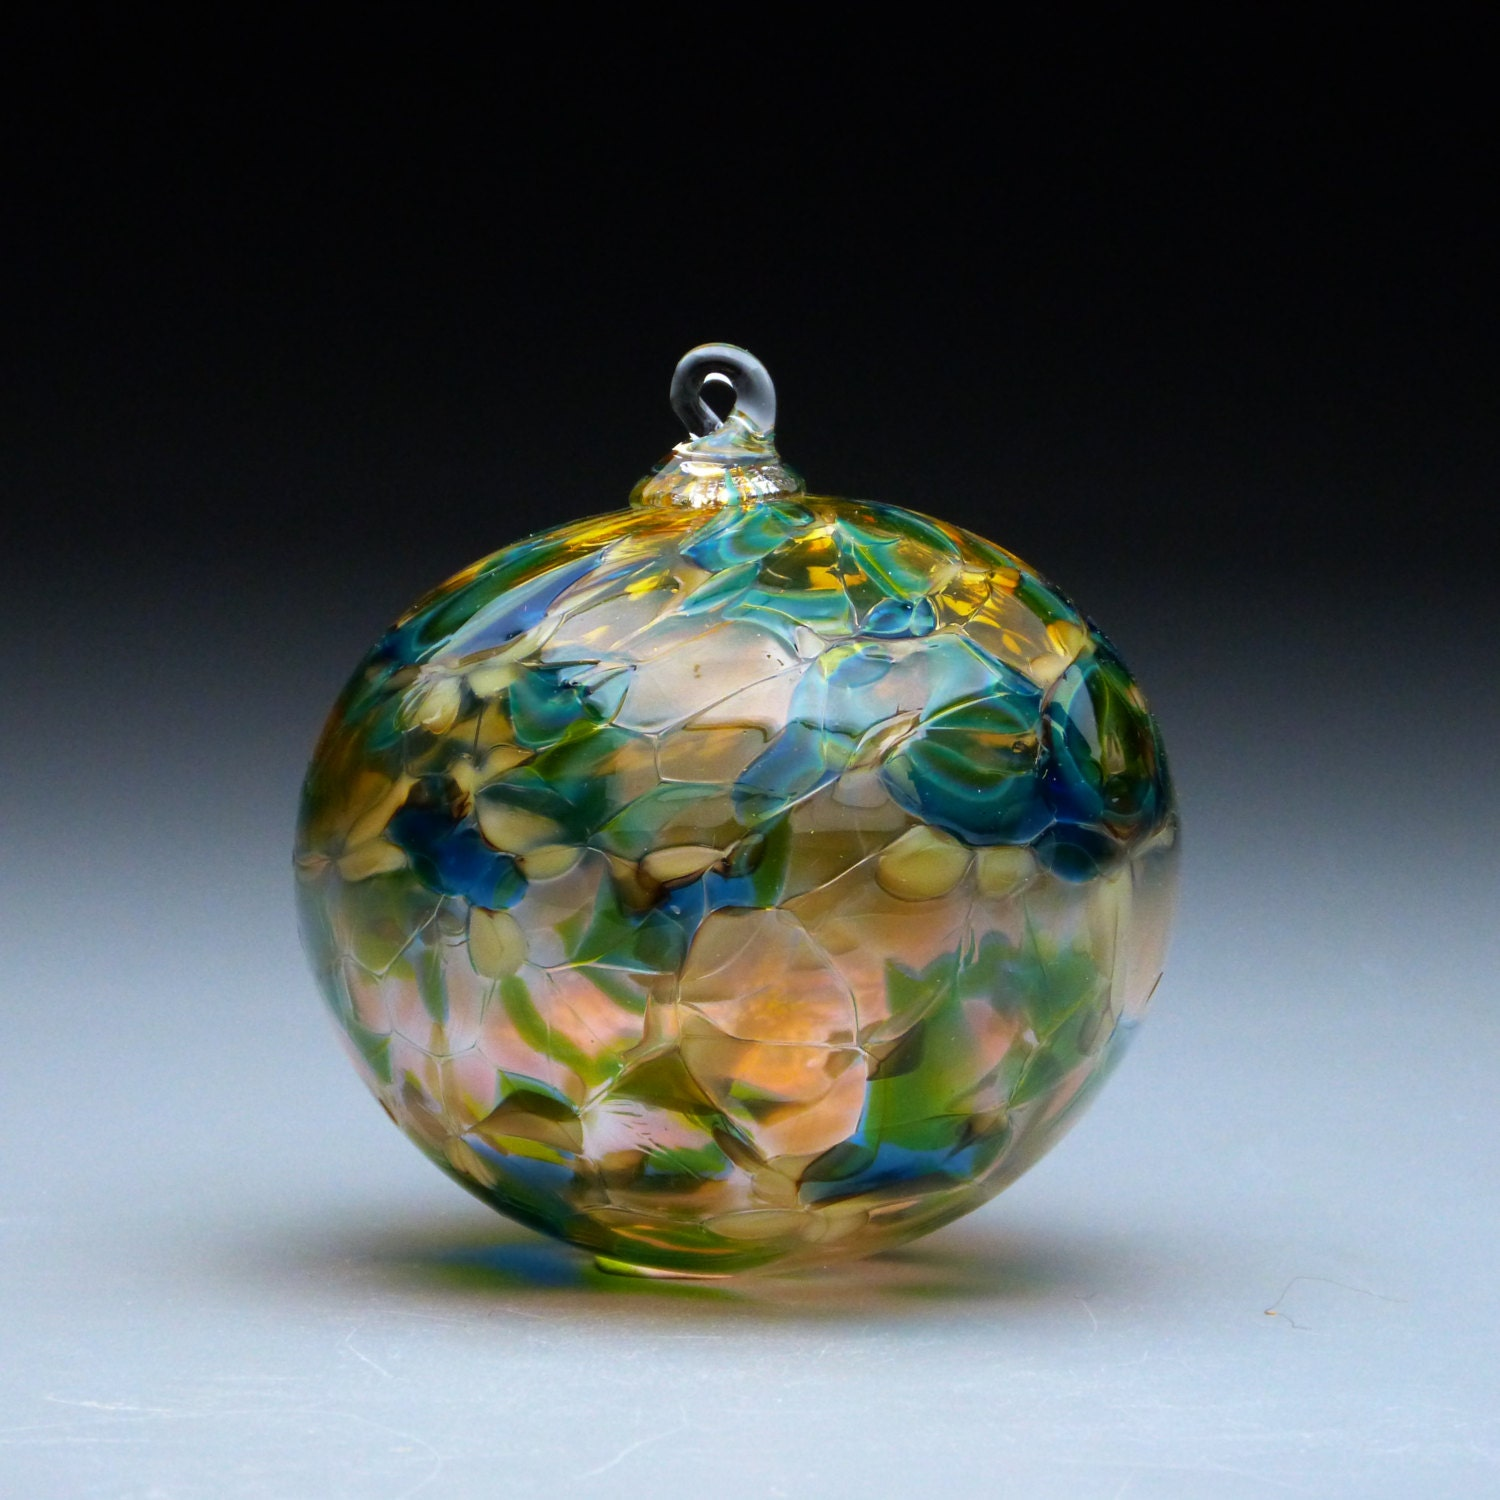 Hand made blown glass christmas ornament in tones of gold